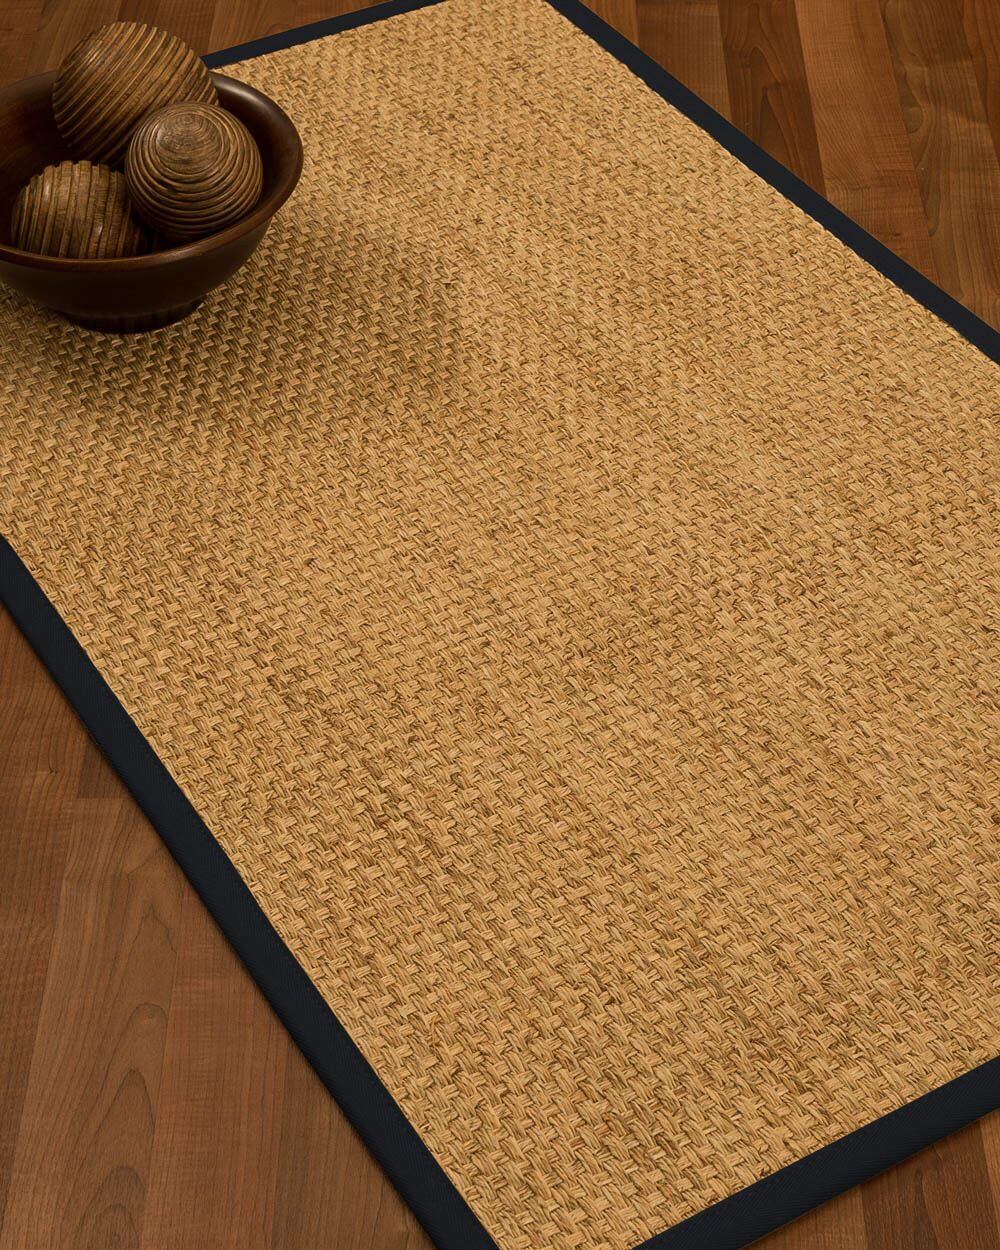 Caster Border Hand-Woven Beige/Midnight Blue Area Rug Rug Size: Rectangle 12' x 15', Rug Pad Included: Yes